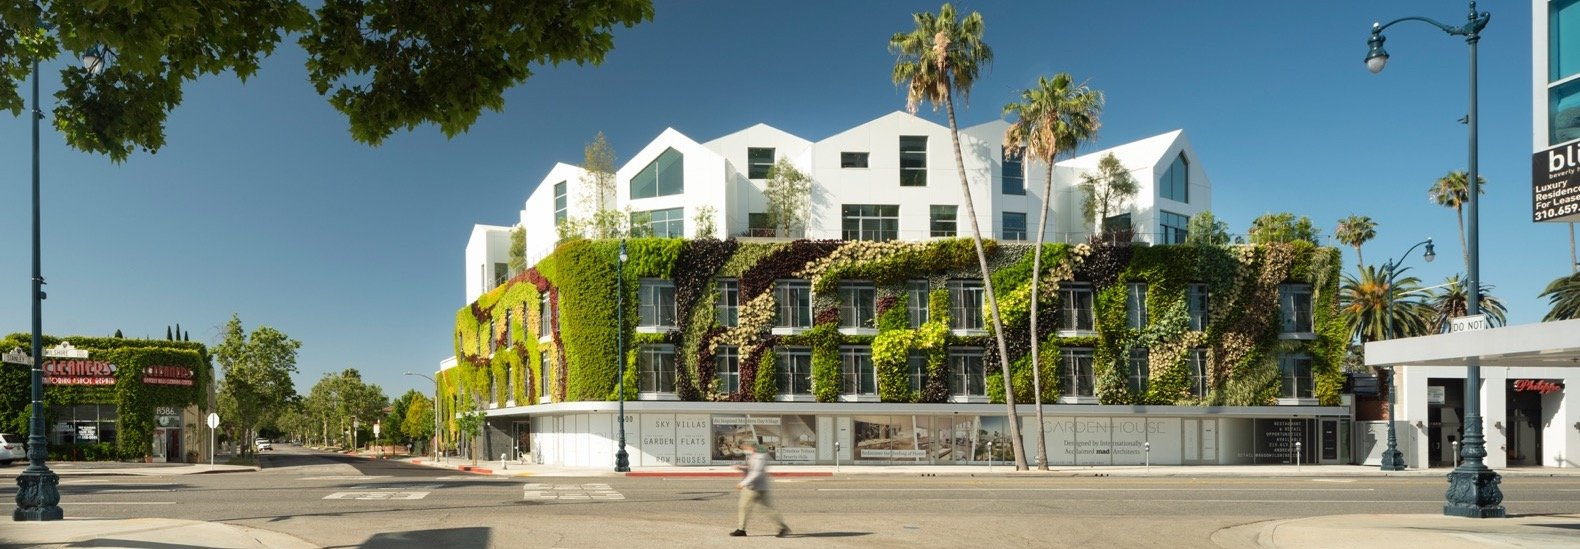 Gardenhouse in Beverly Hills boasts one of the nation's largest green walls